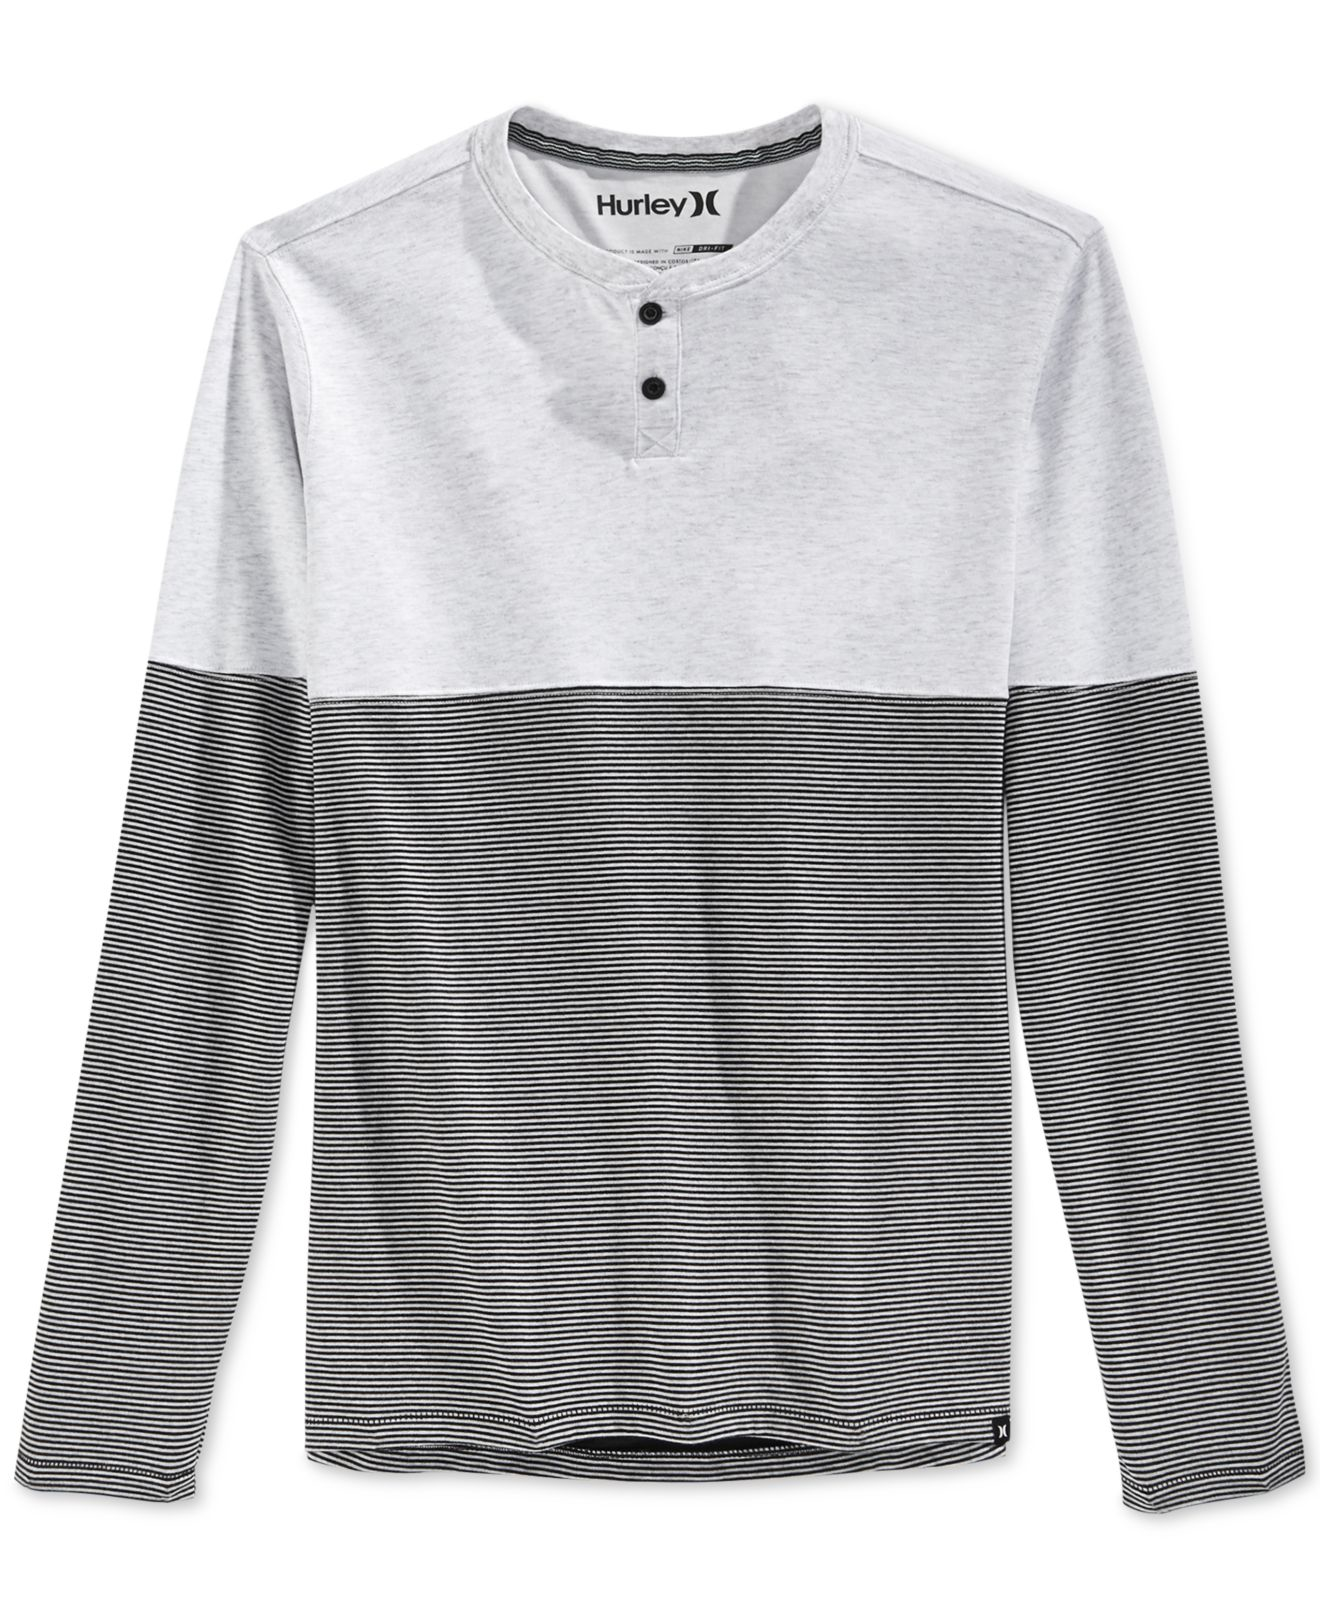 Hurley dri fit colorblock long sleeve henley in black for for Under armour dri fit long sleeve shirts